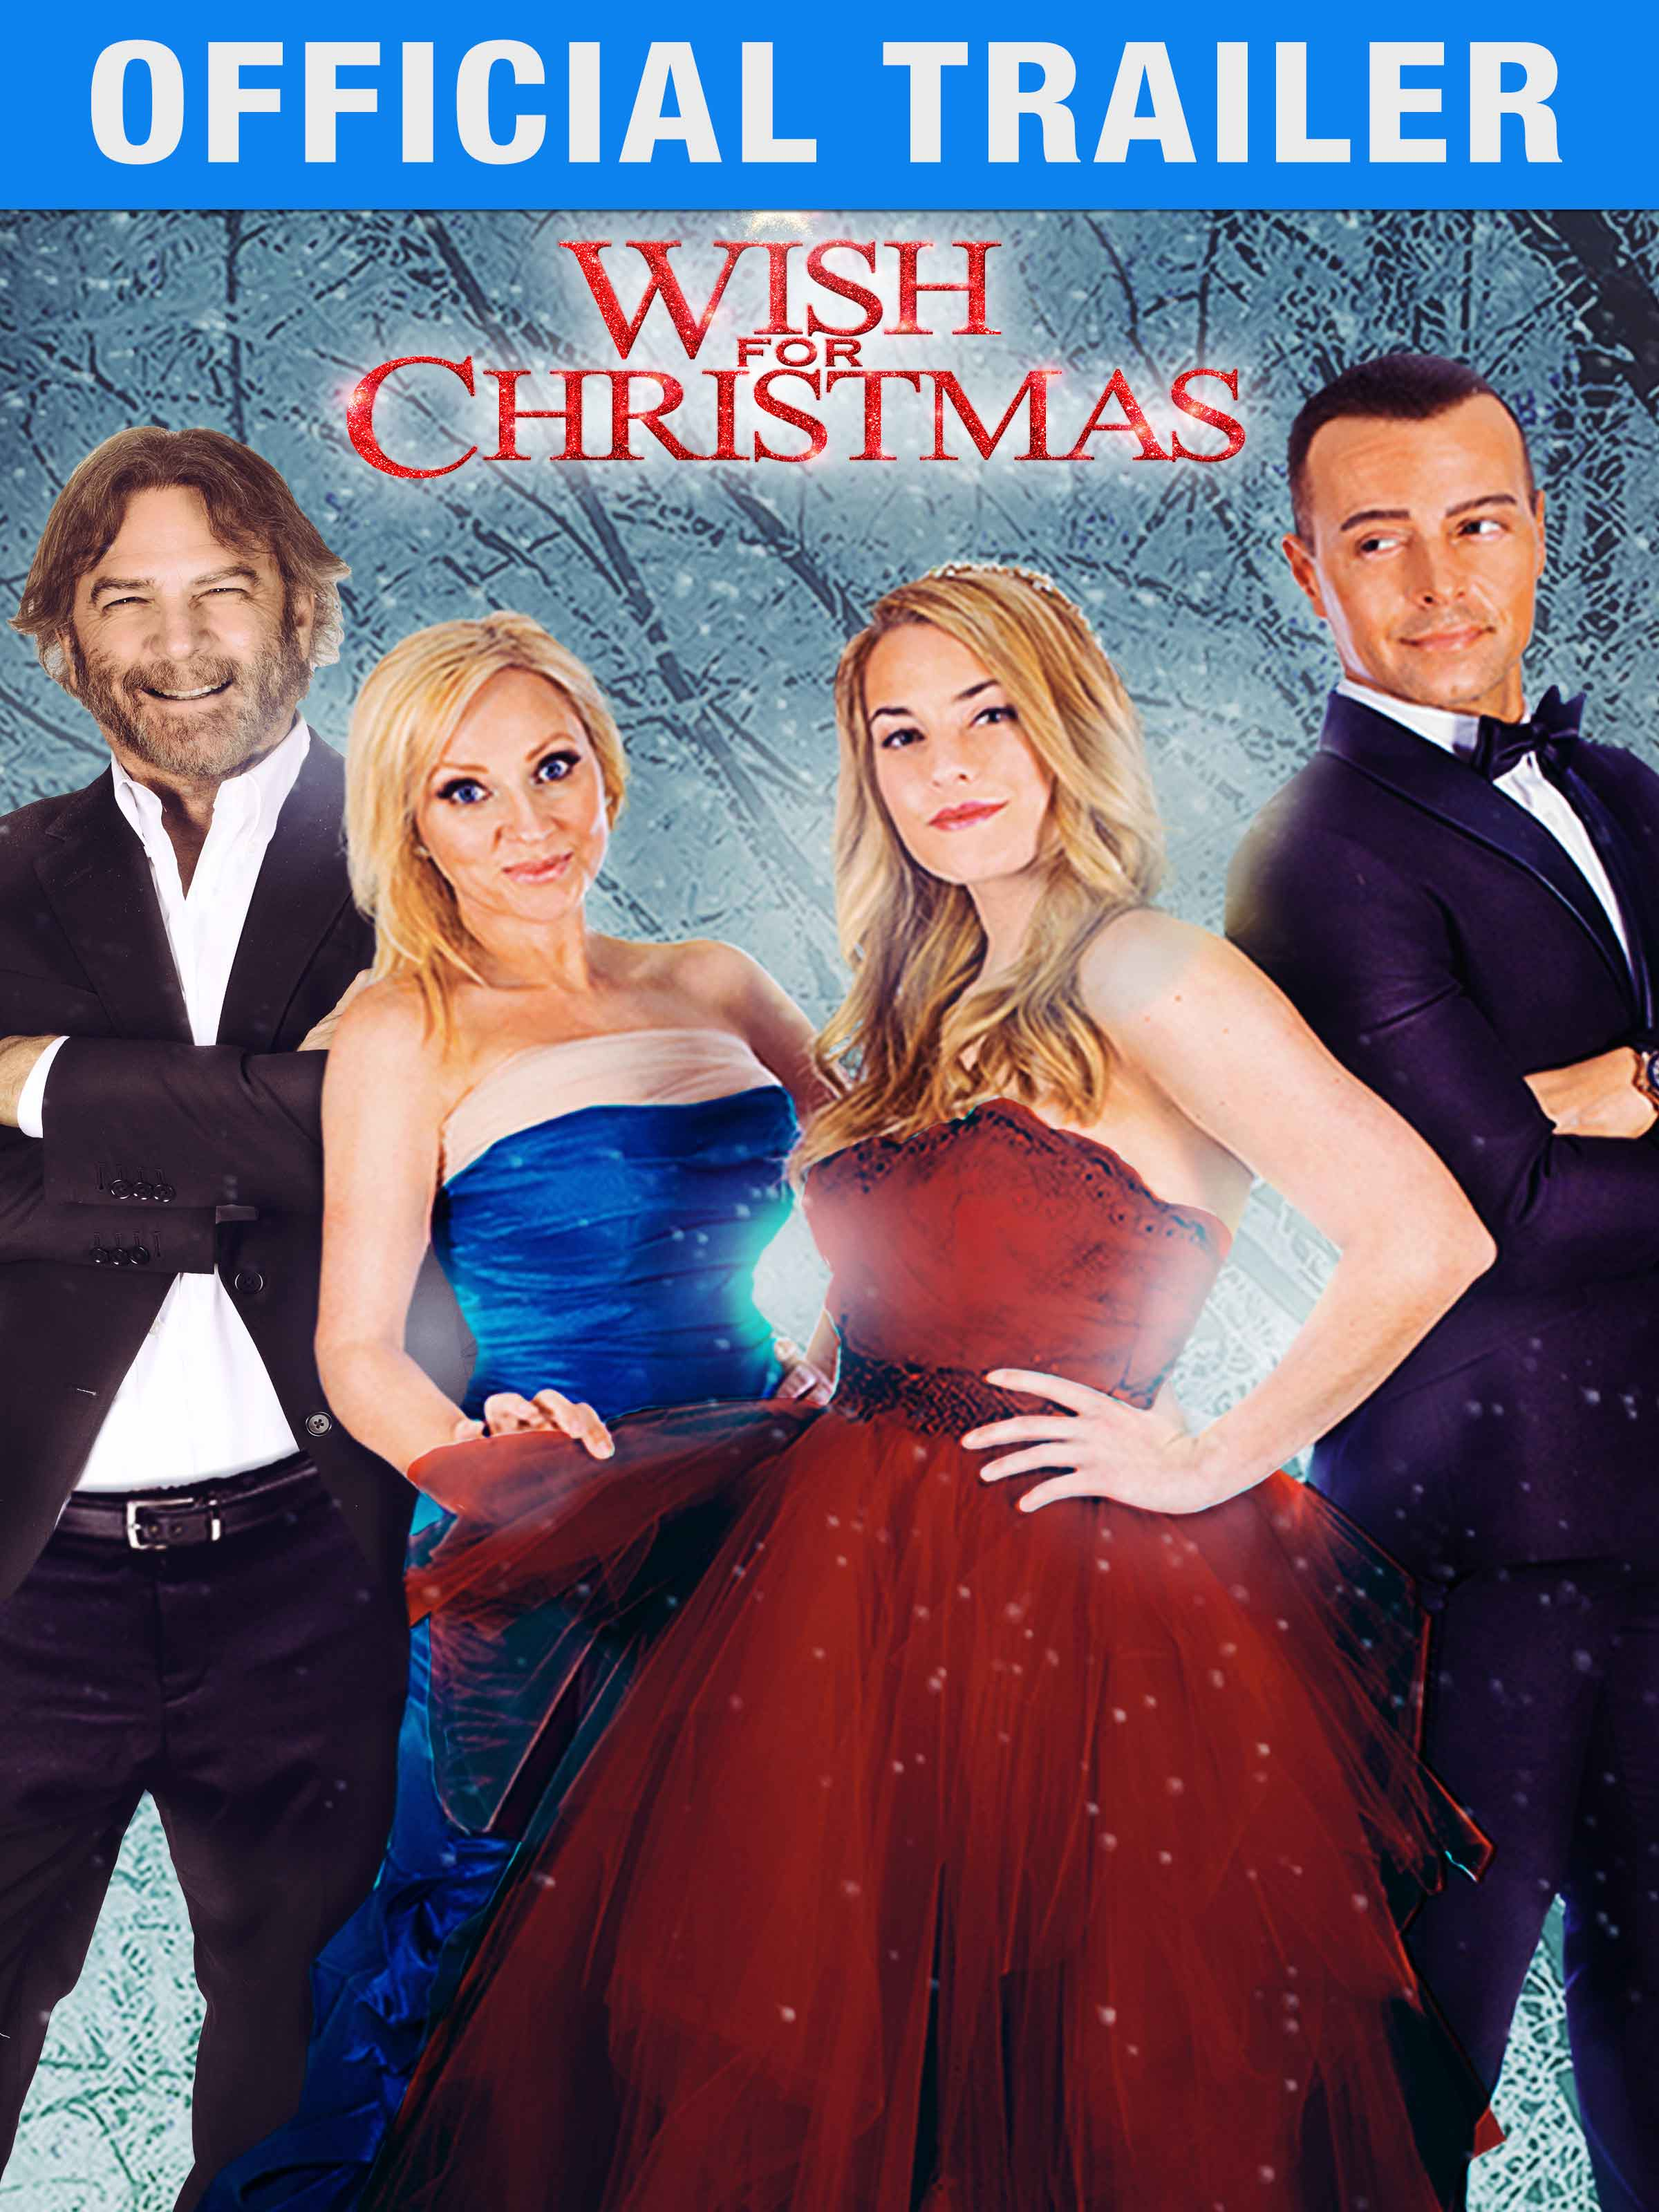 A Wish For Christmas.Wish For Christmas Trailer Pure Flix